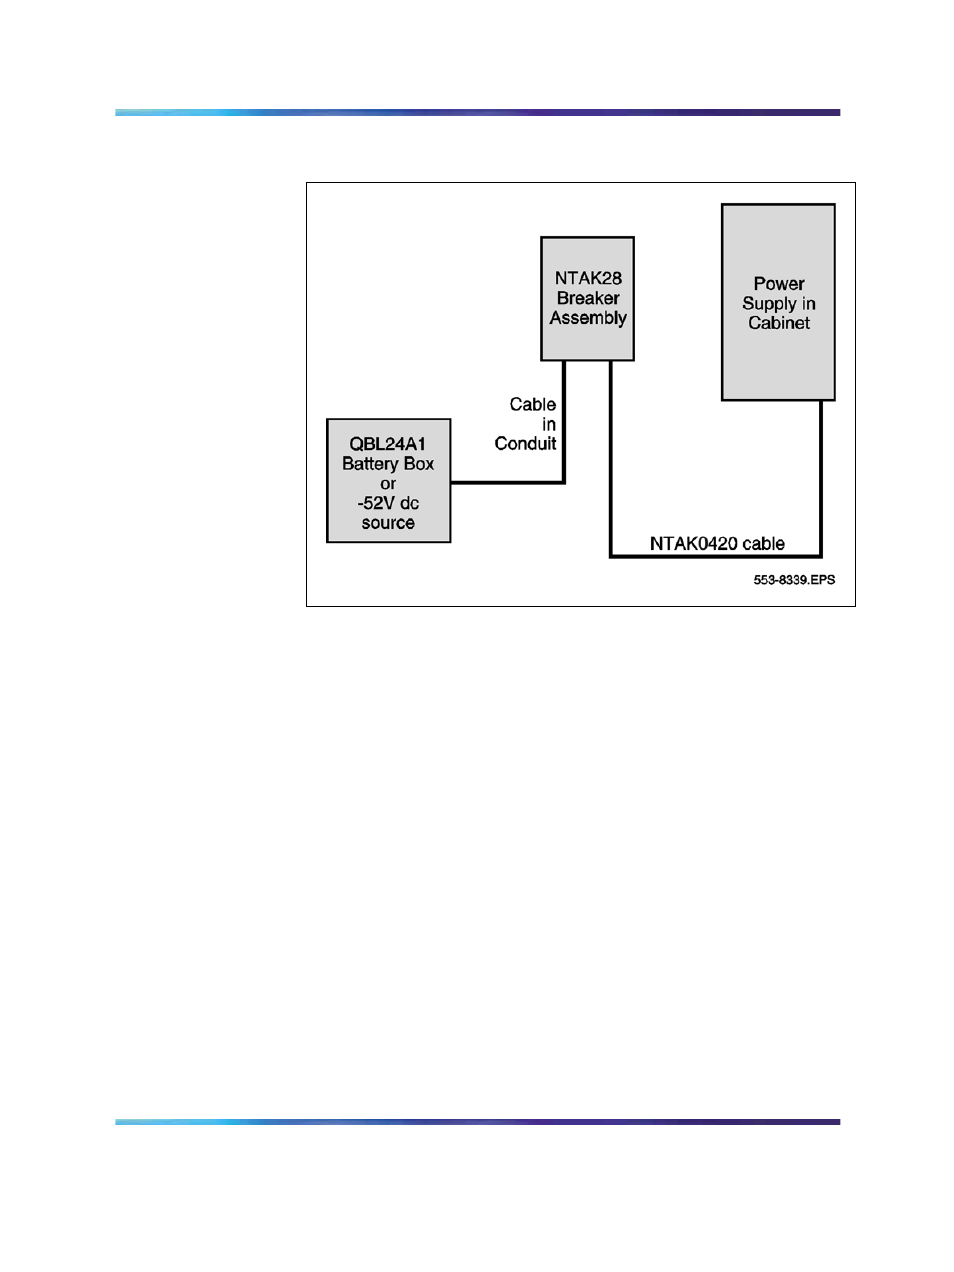 Figure 71 Ntak28 Breaker Assembly Location Nortel Networks 1000m Battery Backup Circuit Page 1 User Manual 157 474